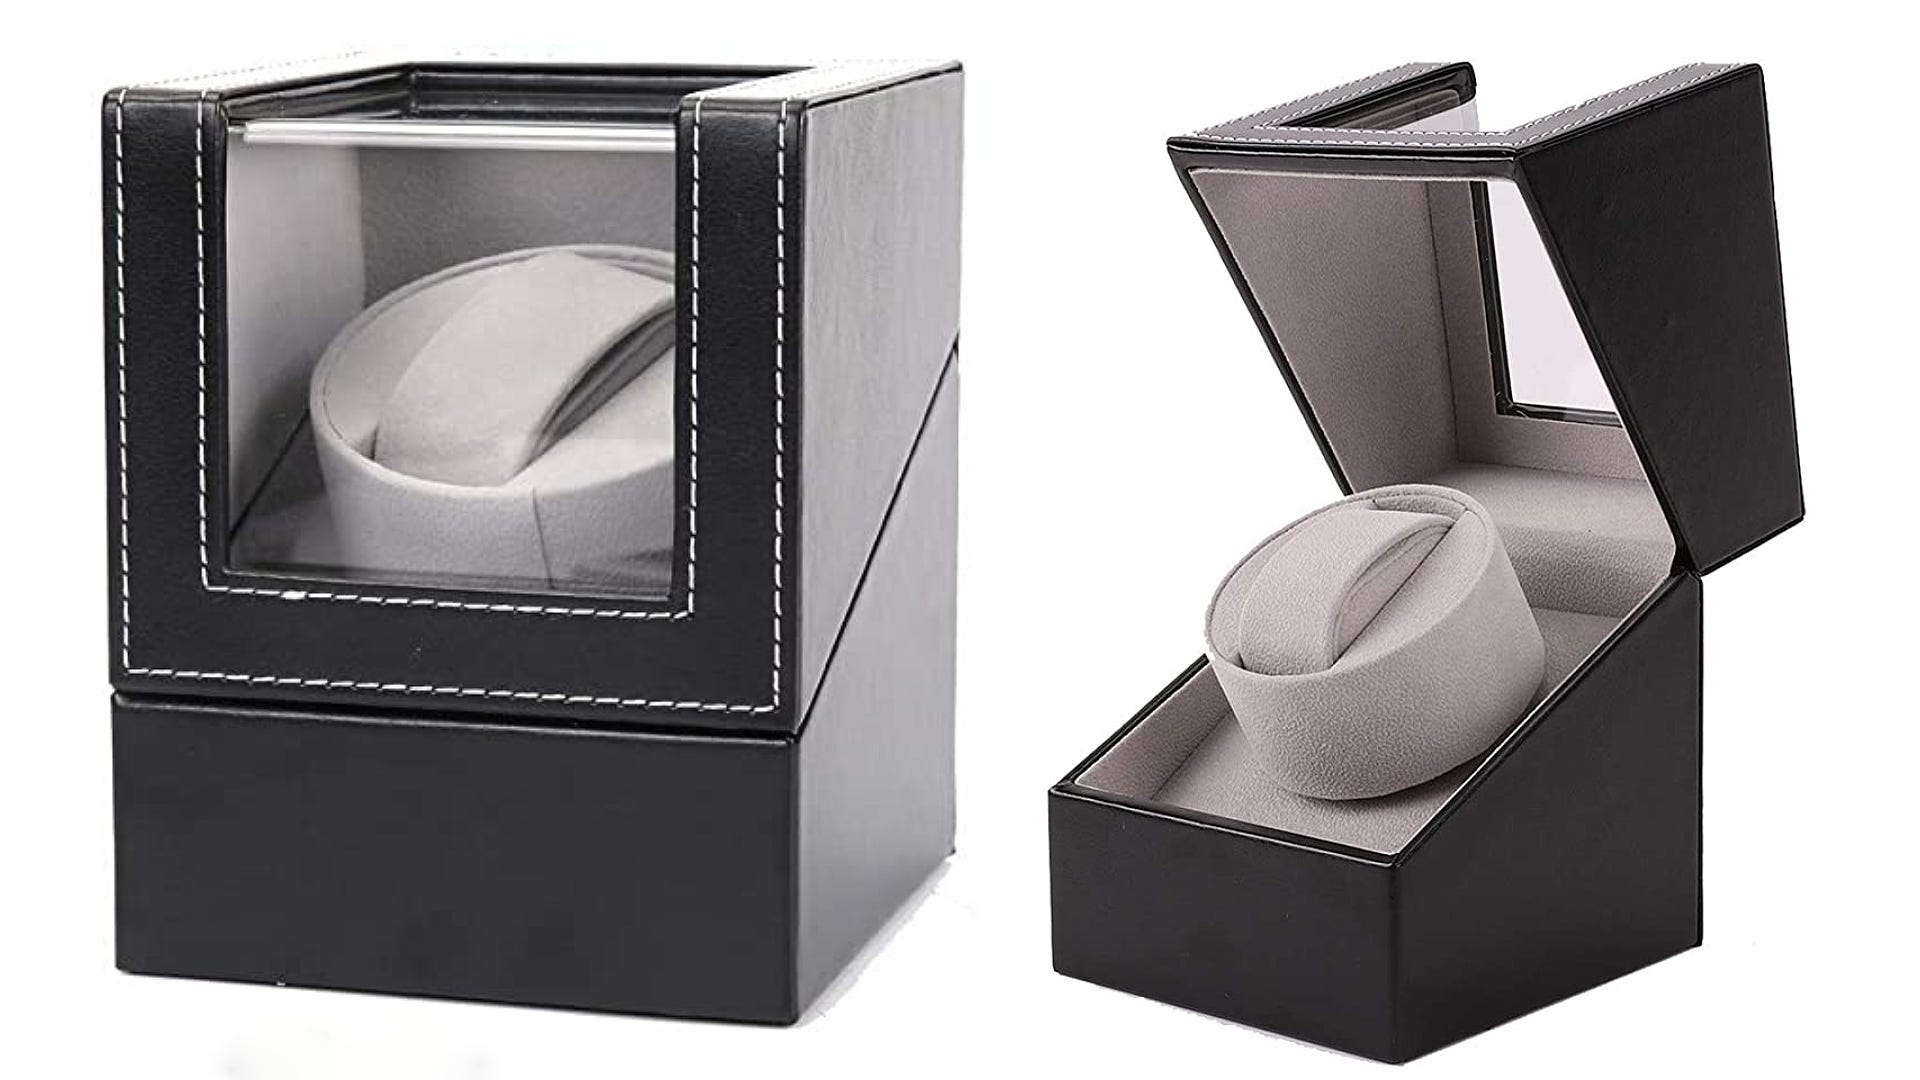 Two views of a leather watch winder closed and opened to reveal a grey interior and inner pillow.